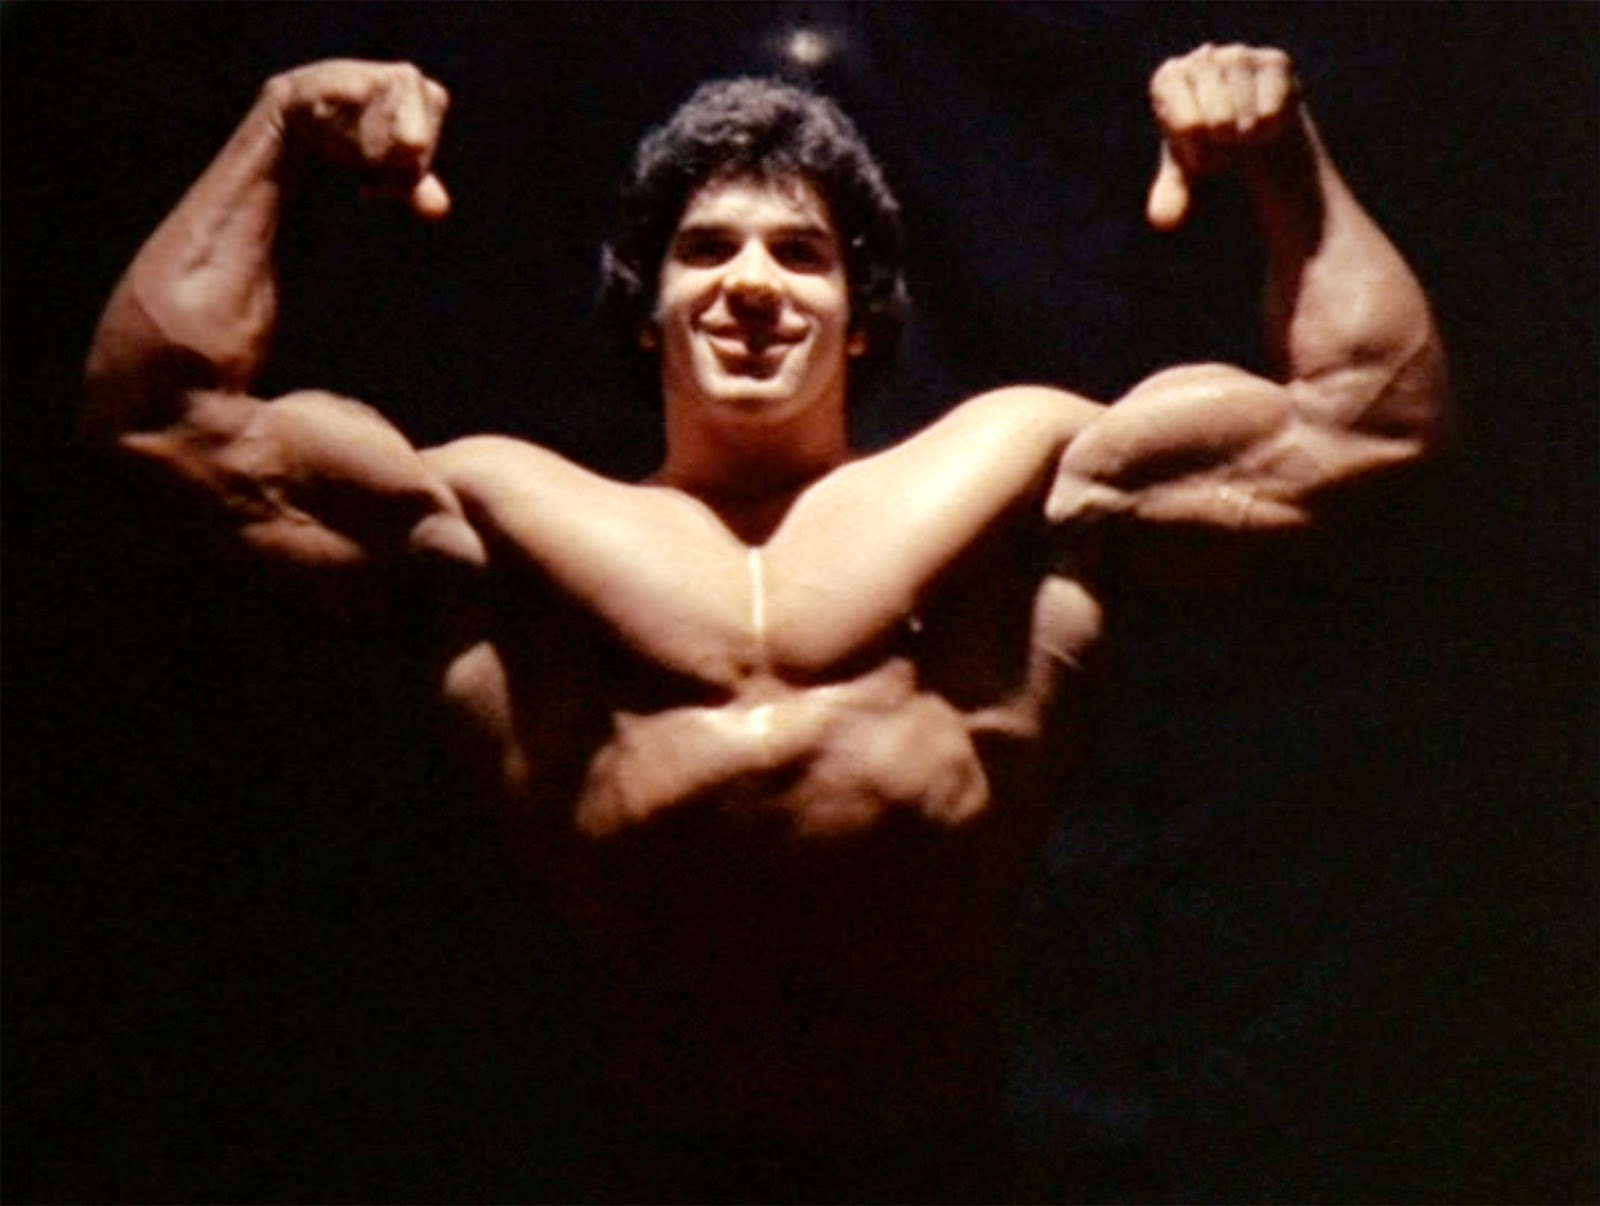 pumping iron This is pumping iron español parte 1 by artmag7 on vimeo, the home for high quality videos and the people who love them.